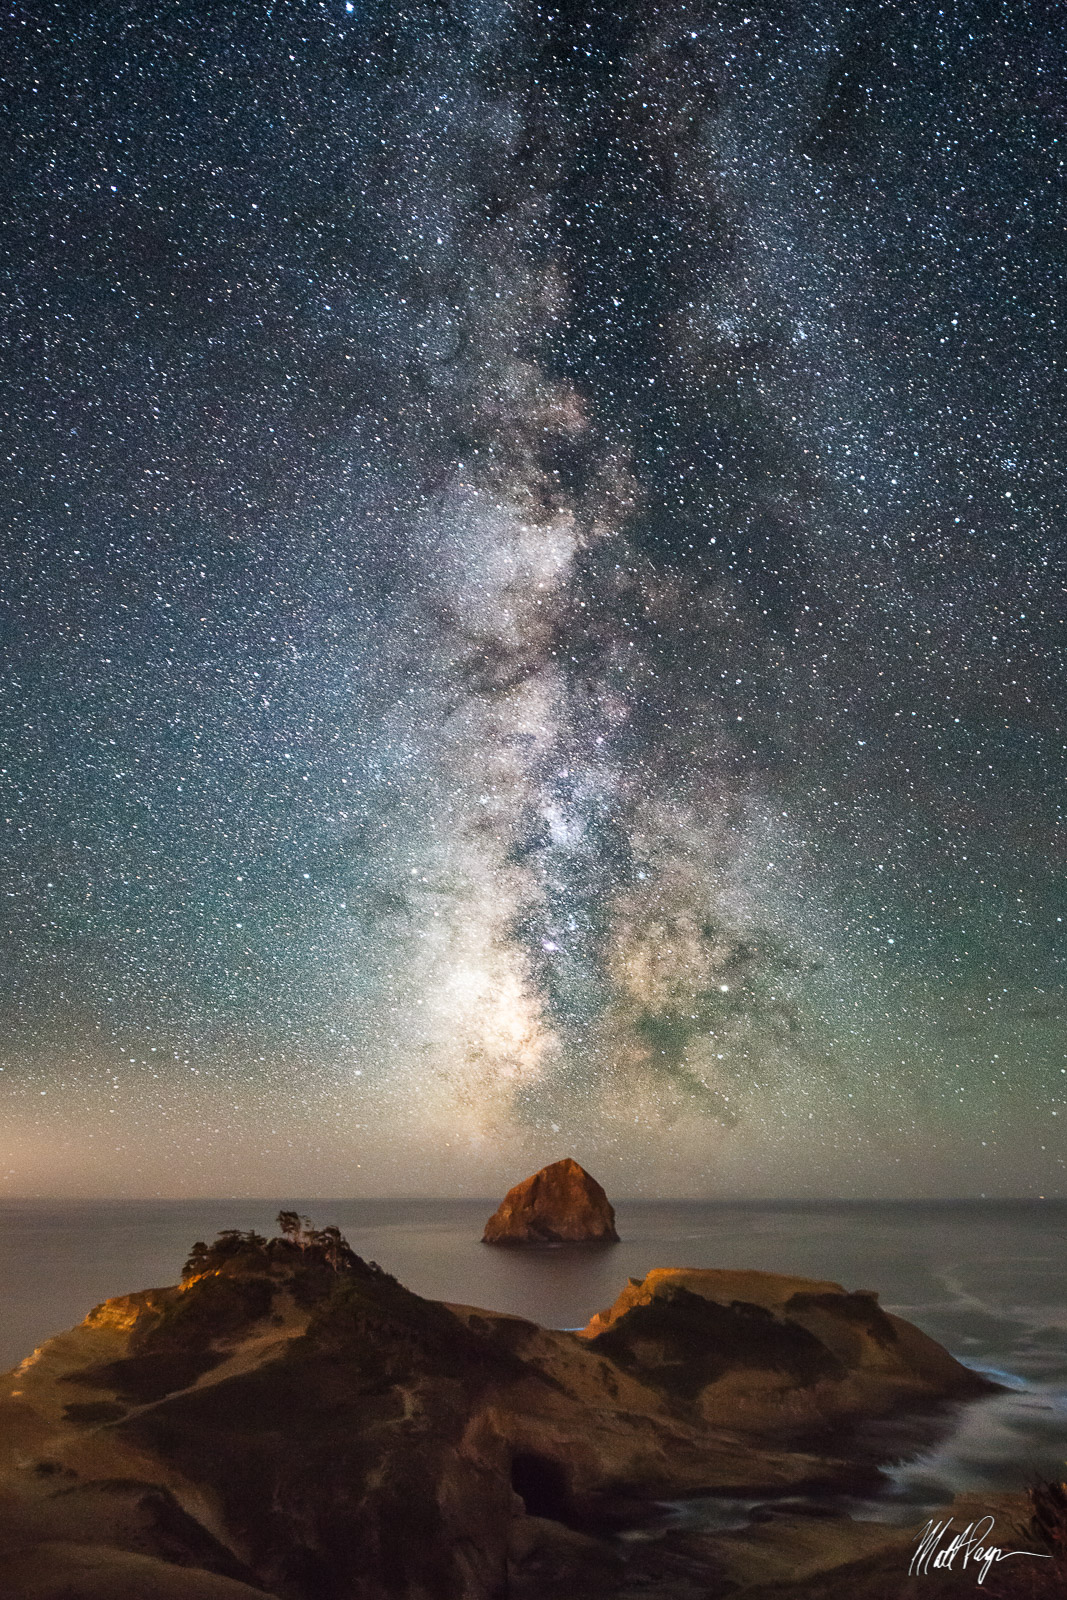 Cape Kiwanda, Coast, Haystack Rock, Landscape, summer, Milky Way, Night, Nightscape, Ocean, Oregon, Pacific City, Pacific Northwest, Stars, photo